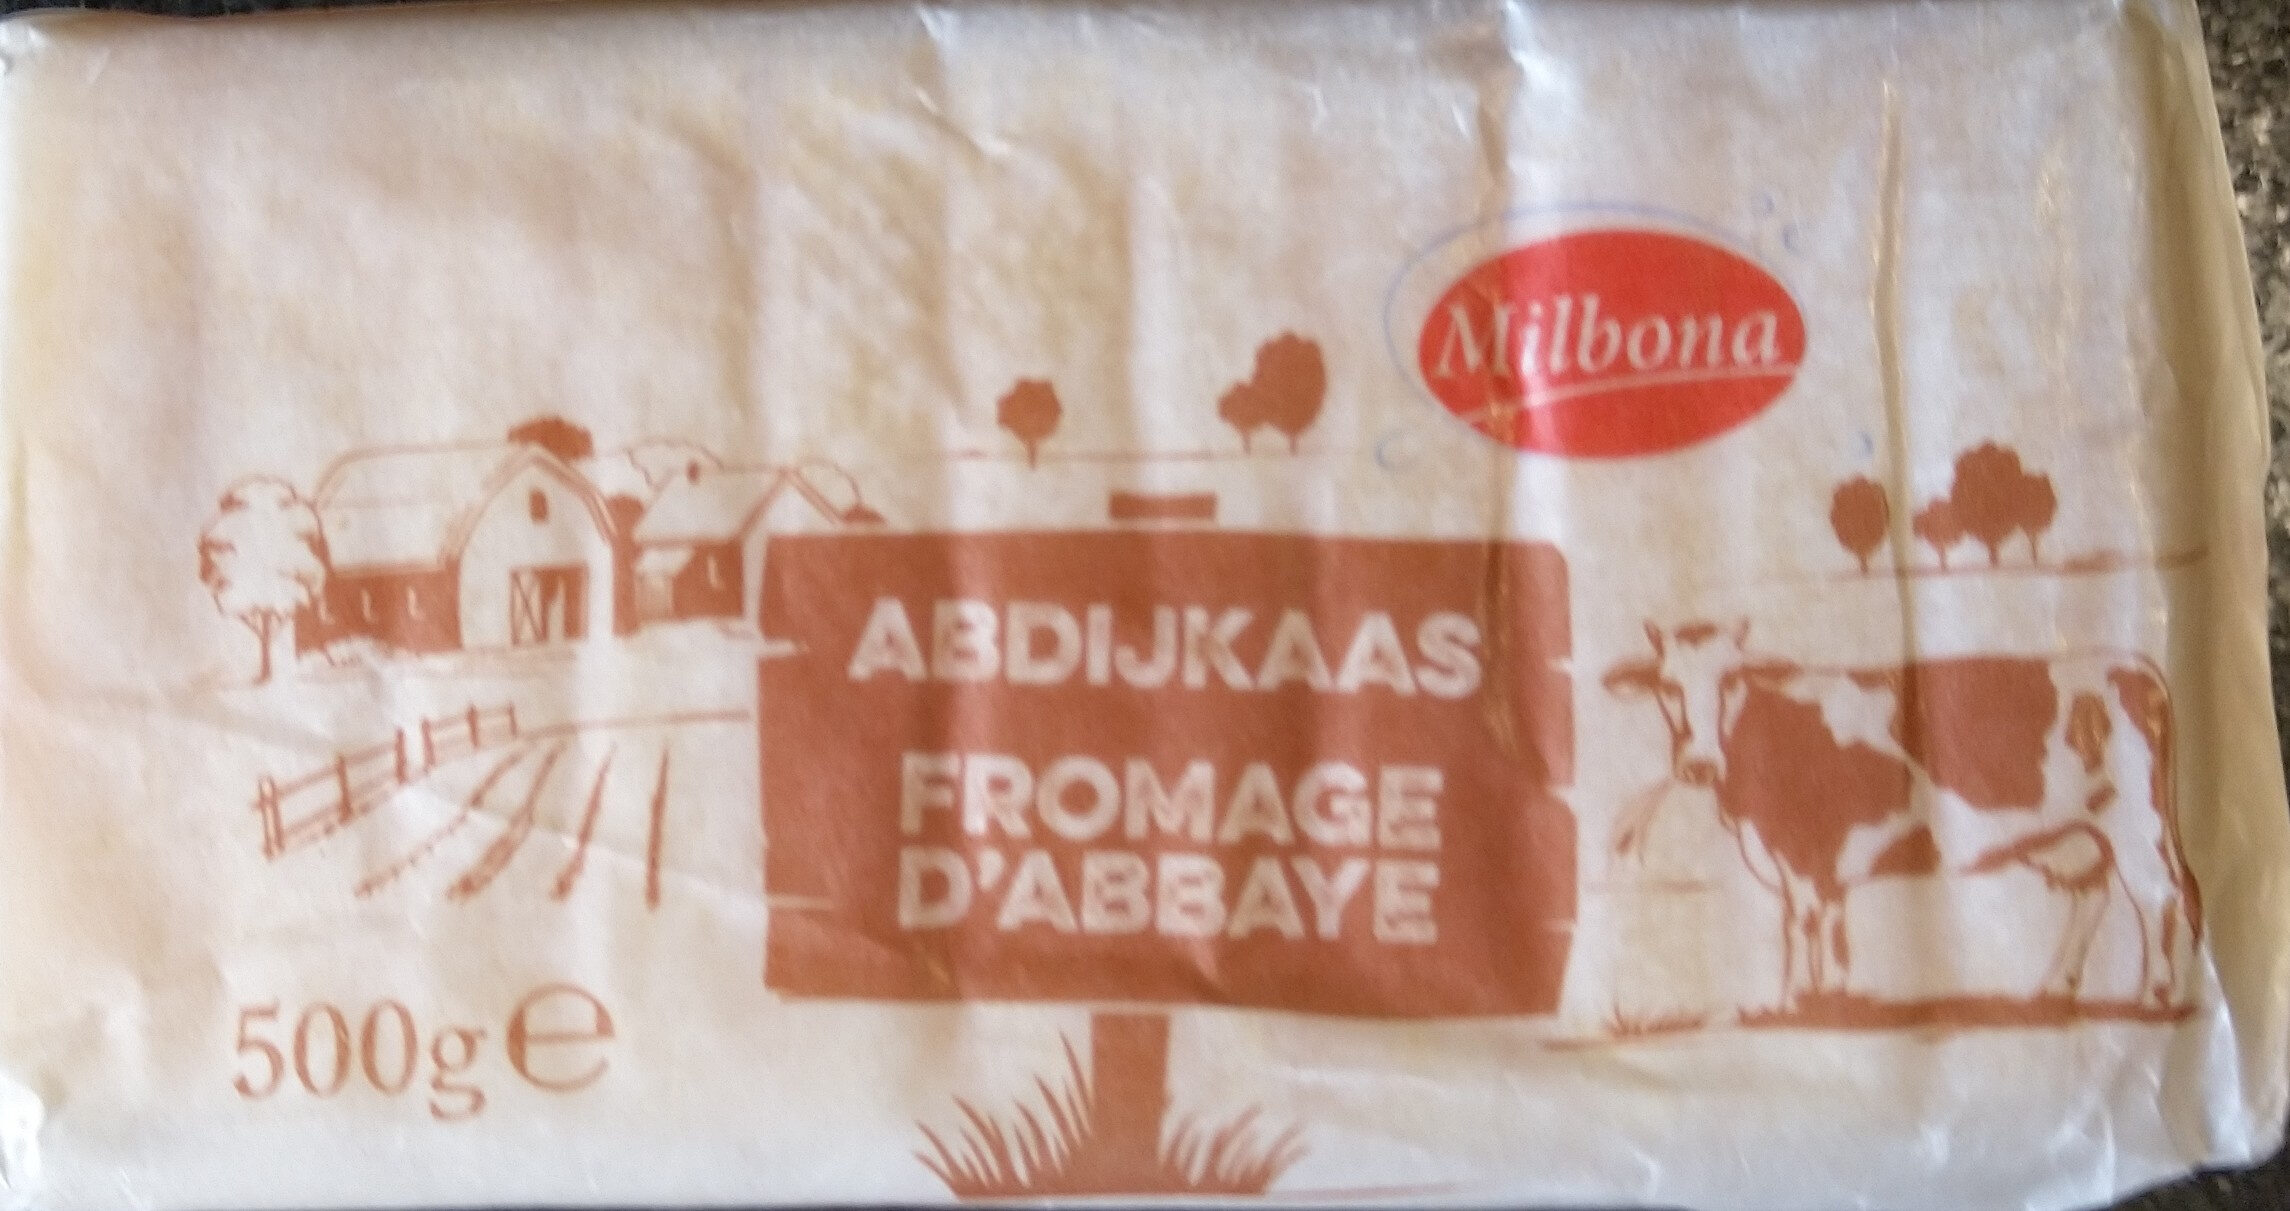 Fromage d'abbaye - Product